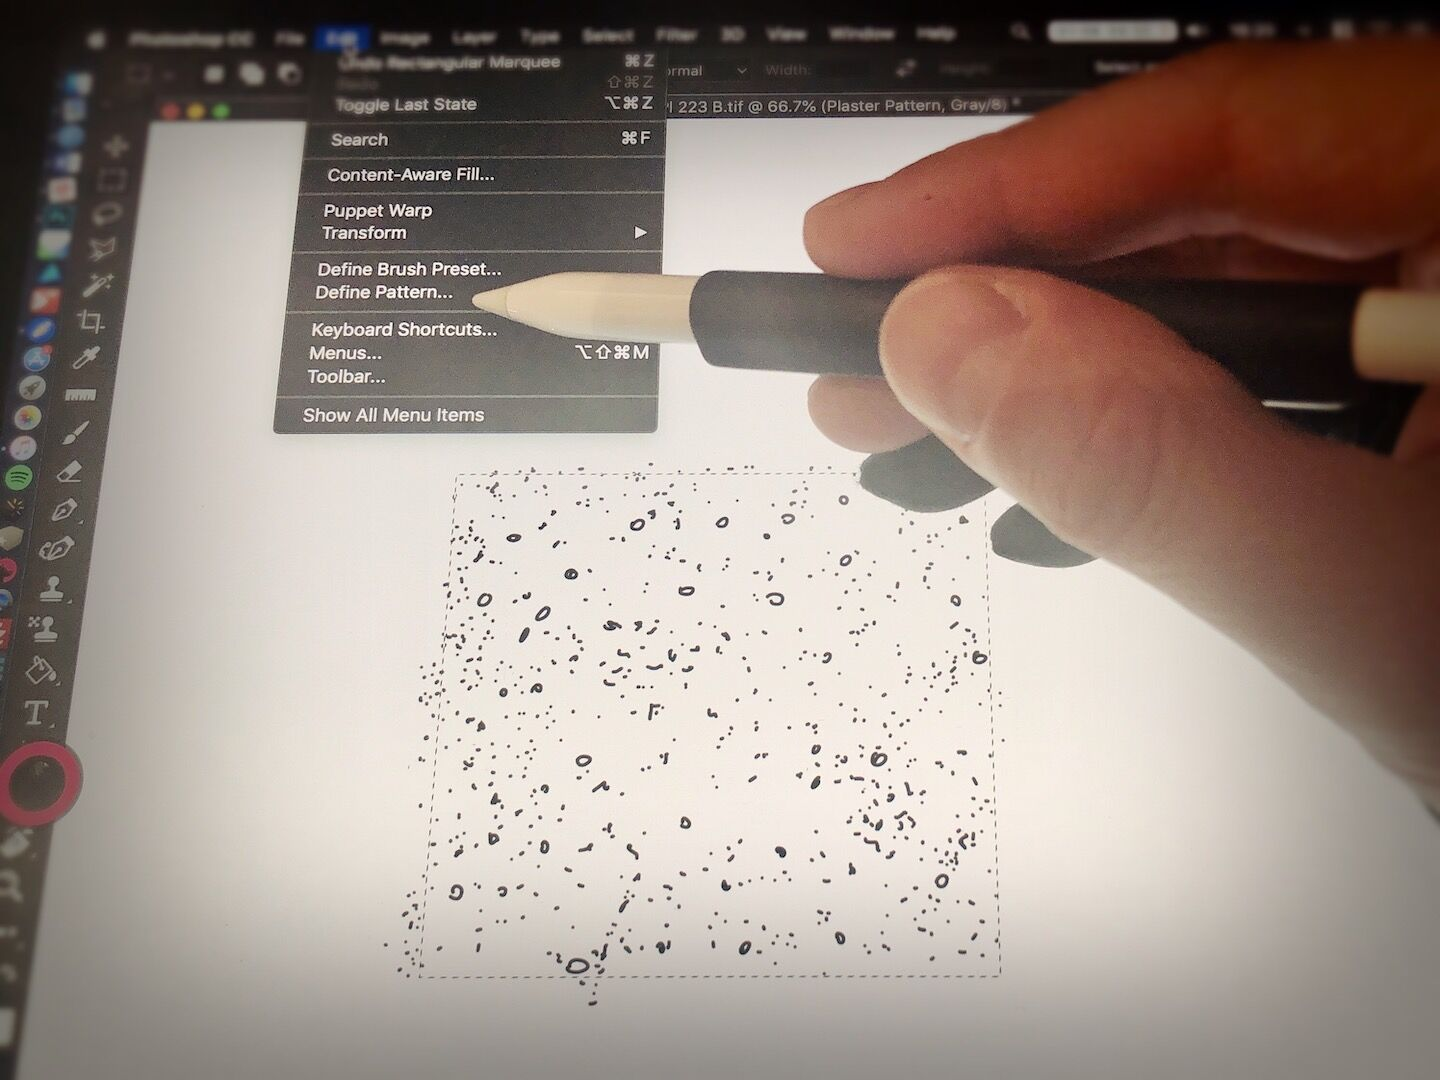 Creating custom plaster patterns for digital inking